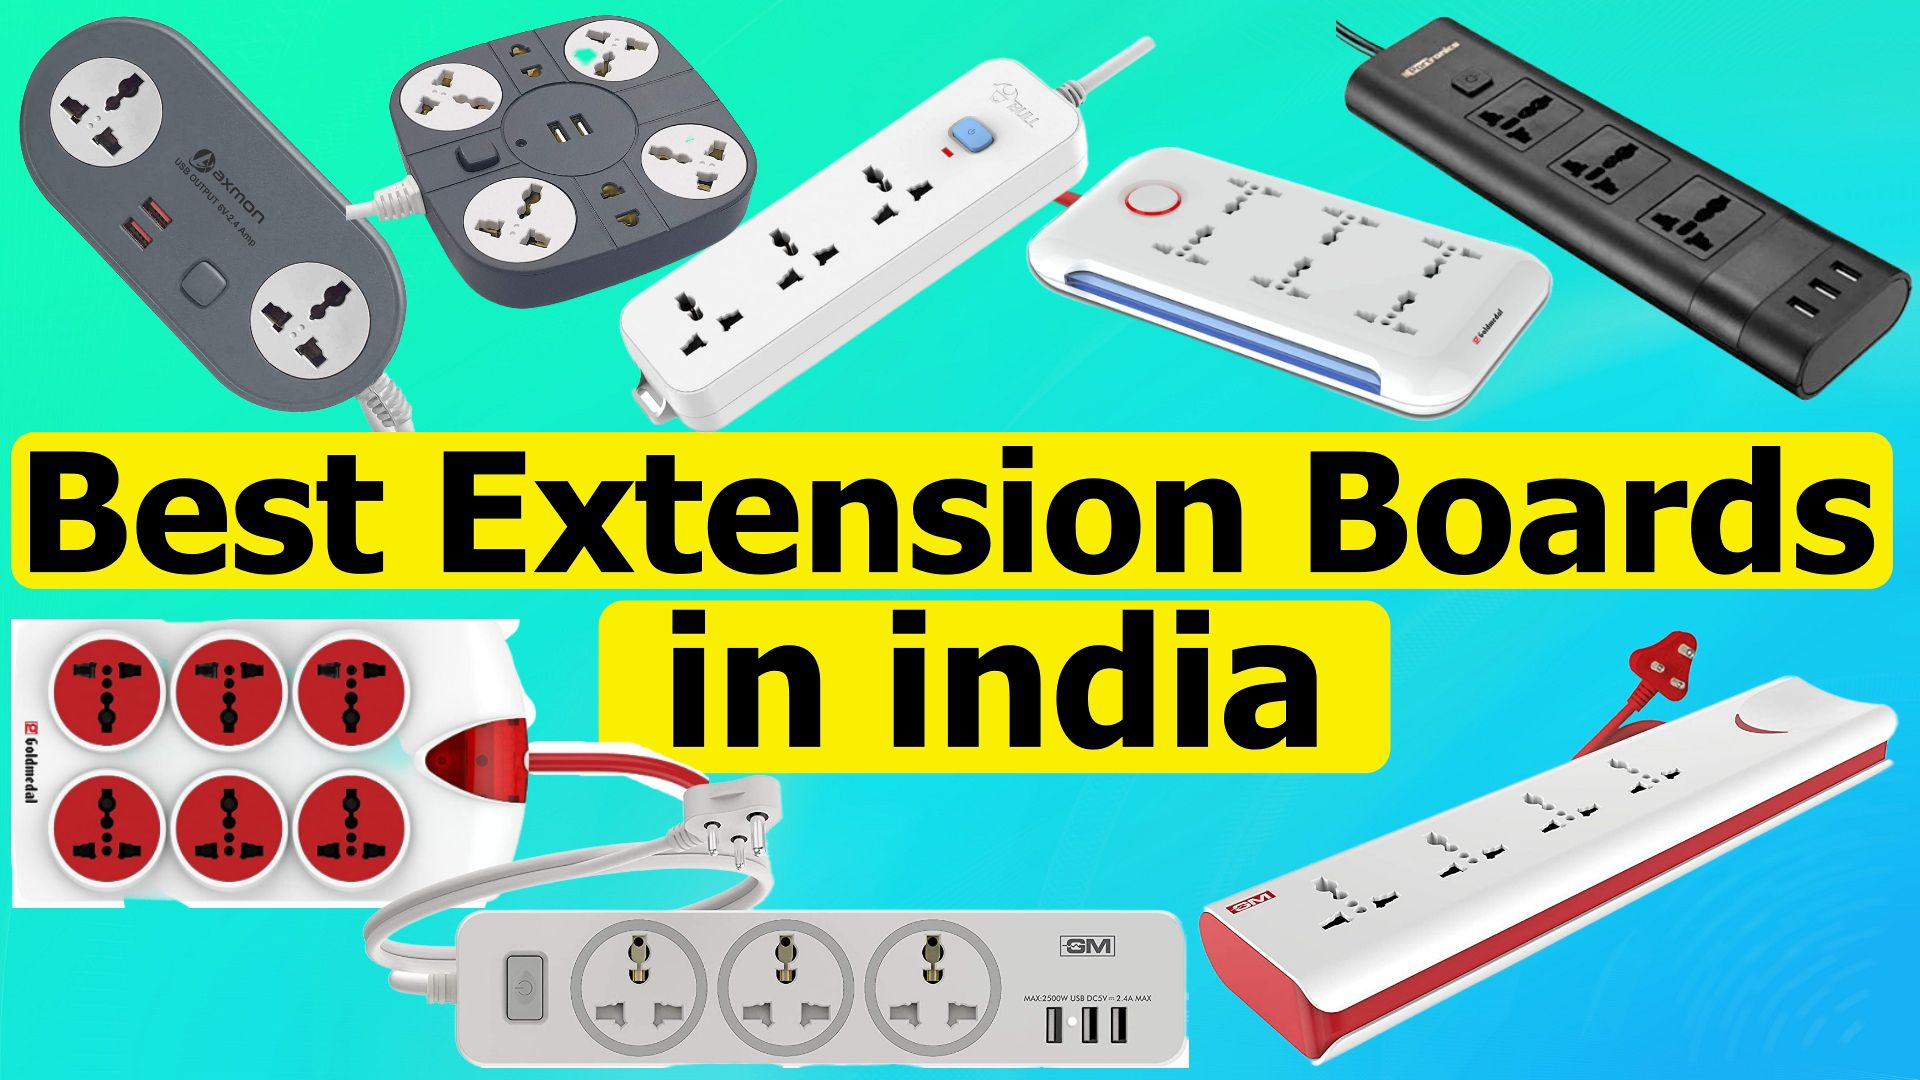 Best extension boards in India